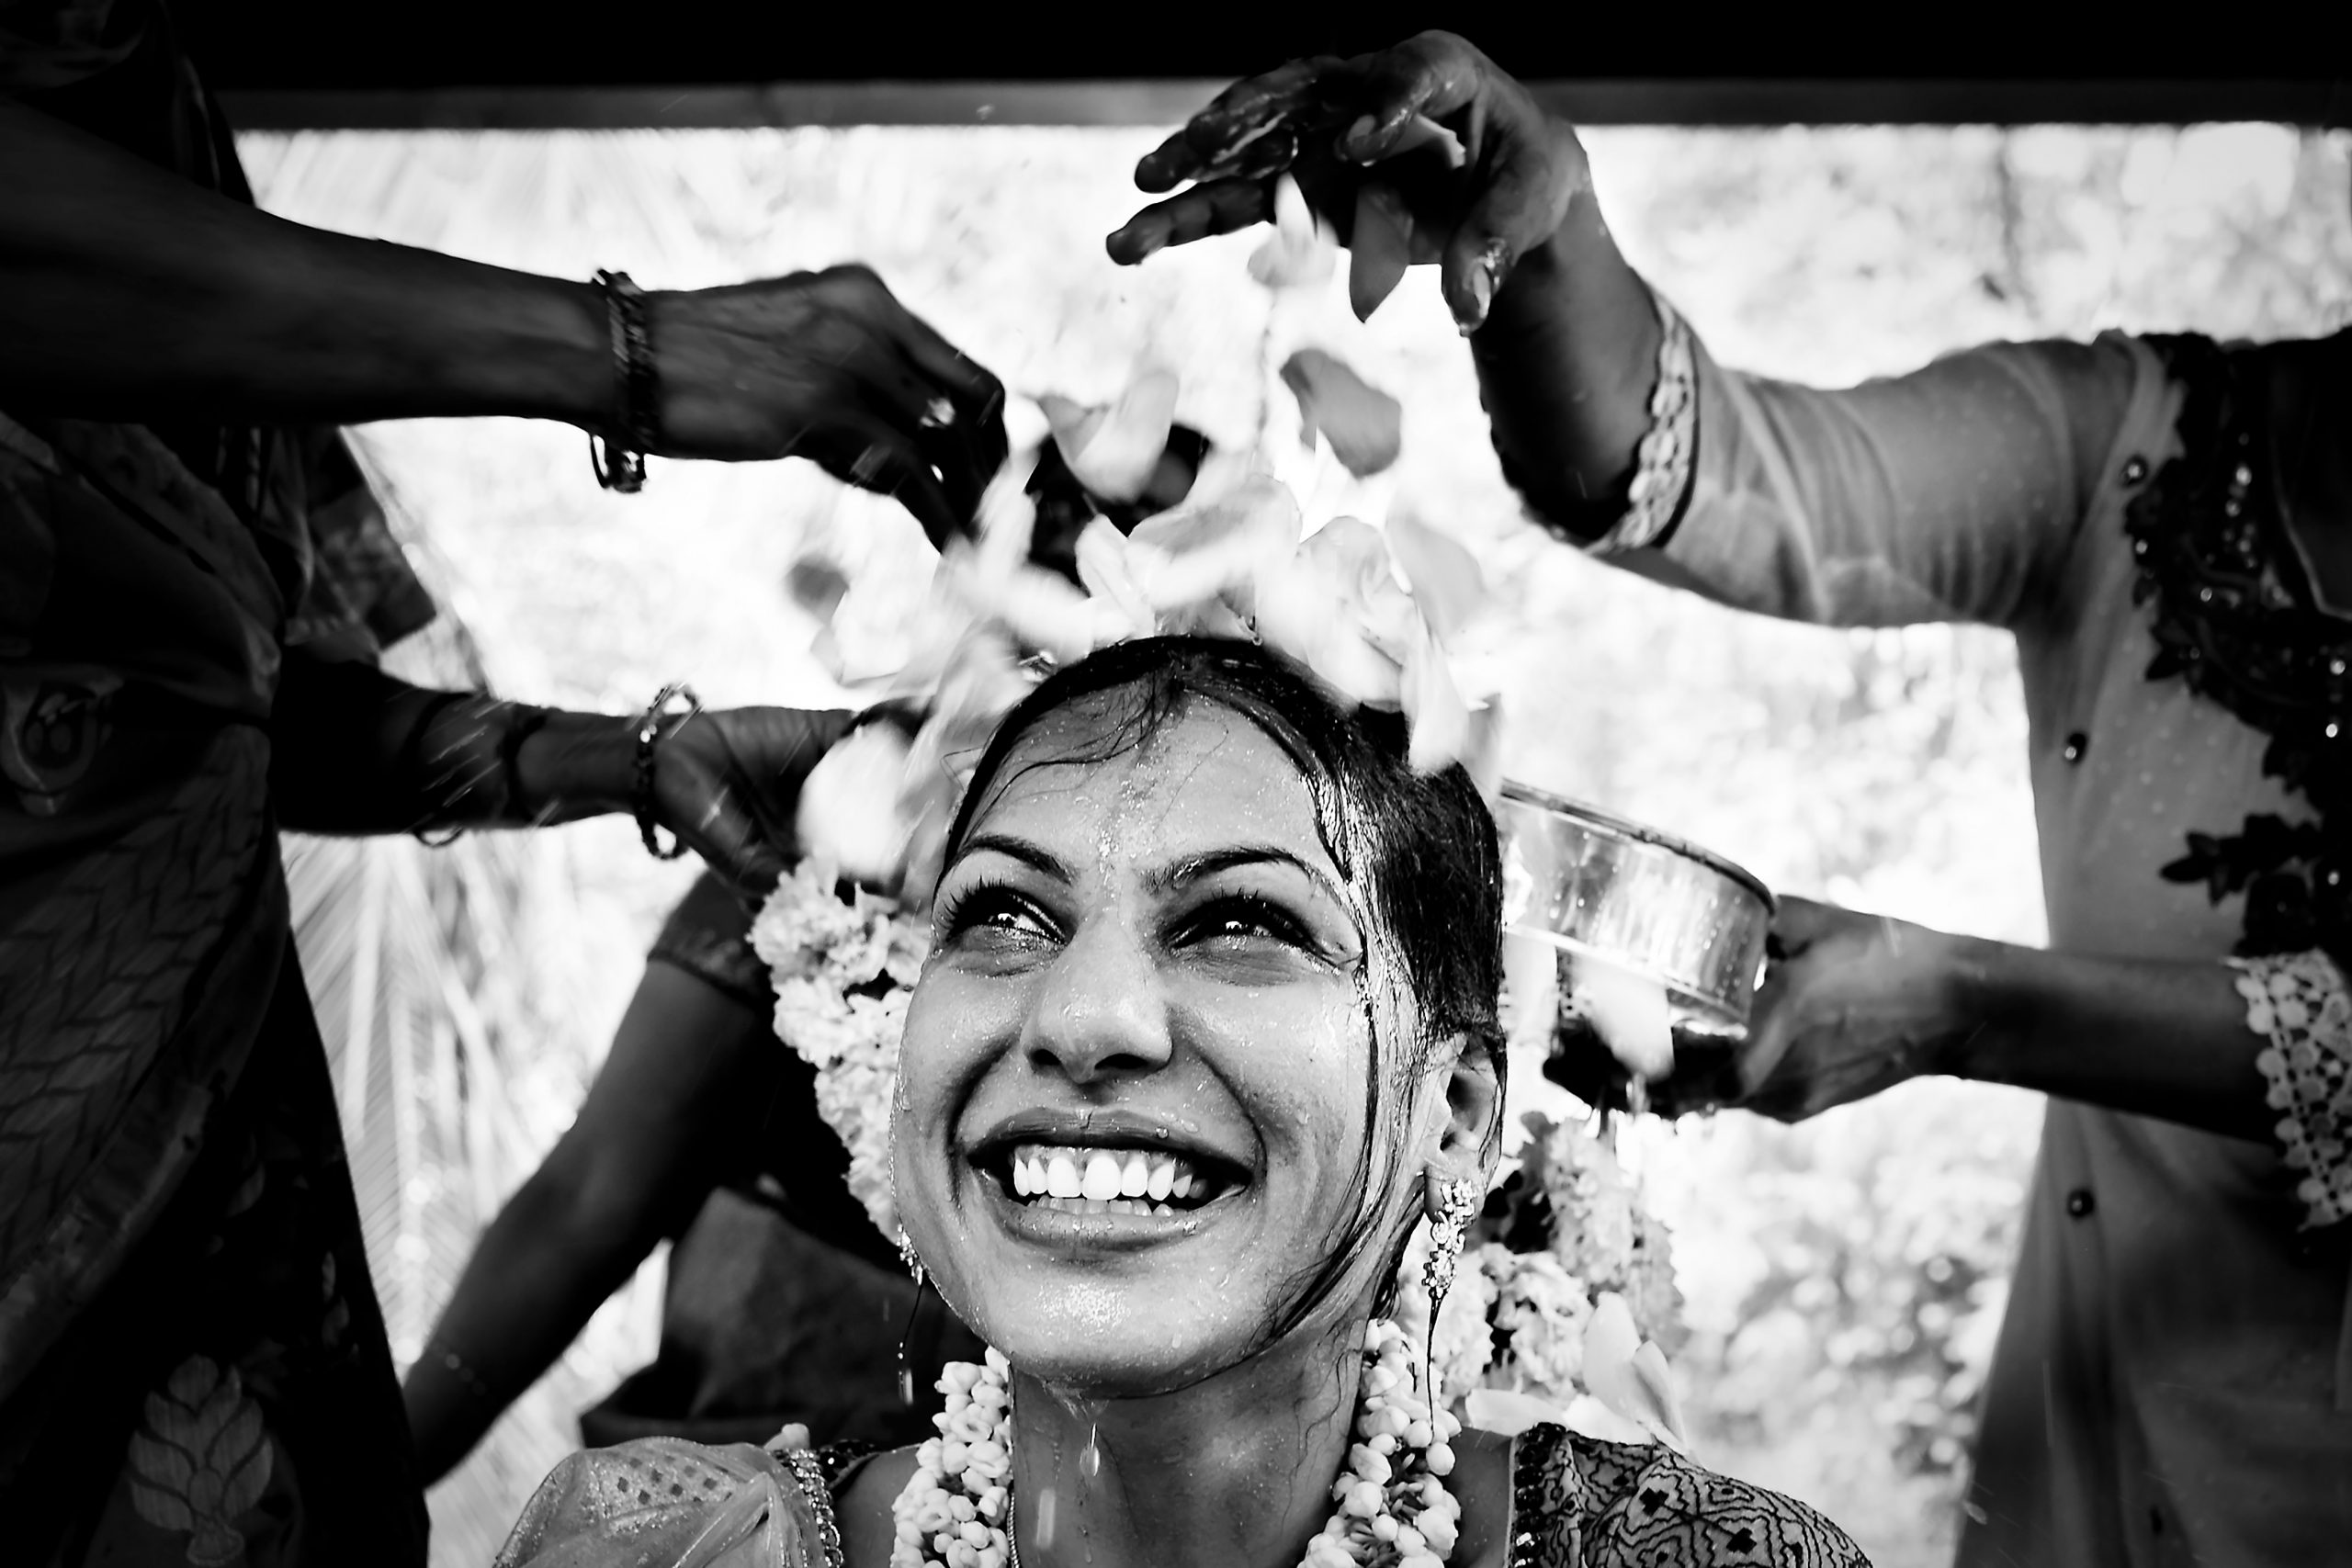 Throwing flower petals on the head of an Indian bride